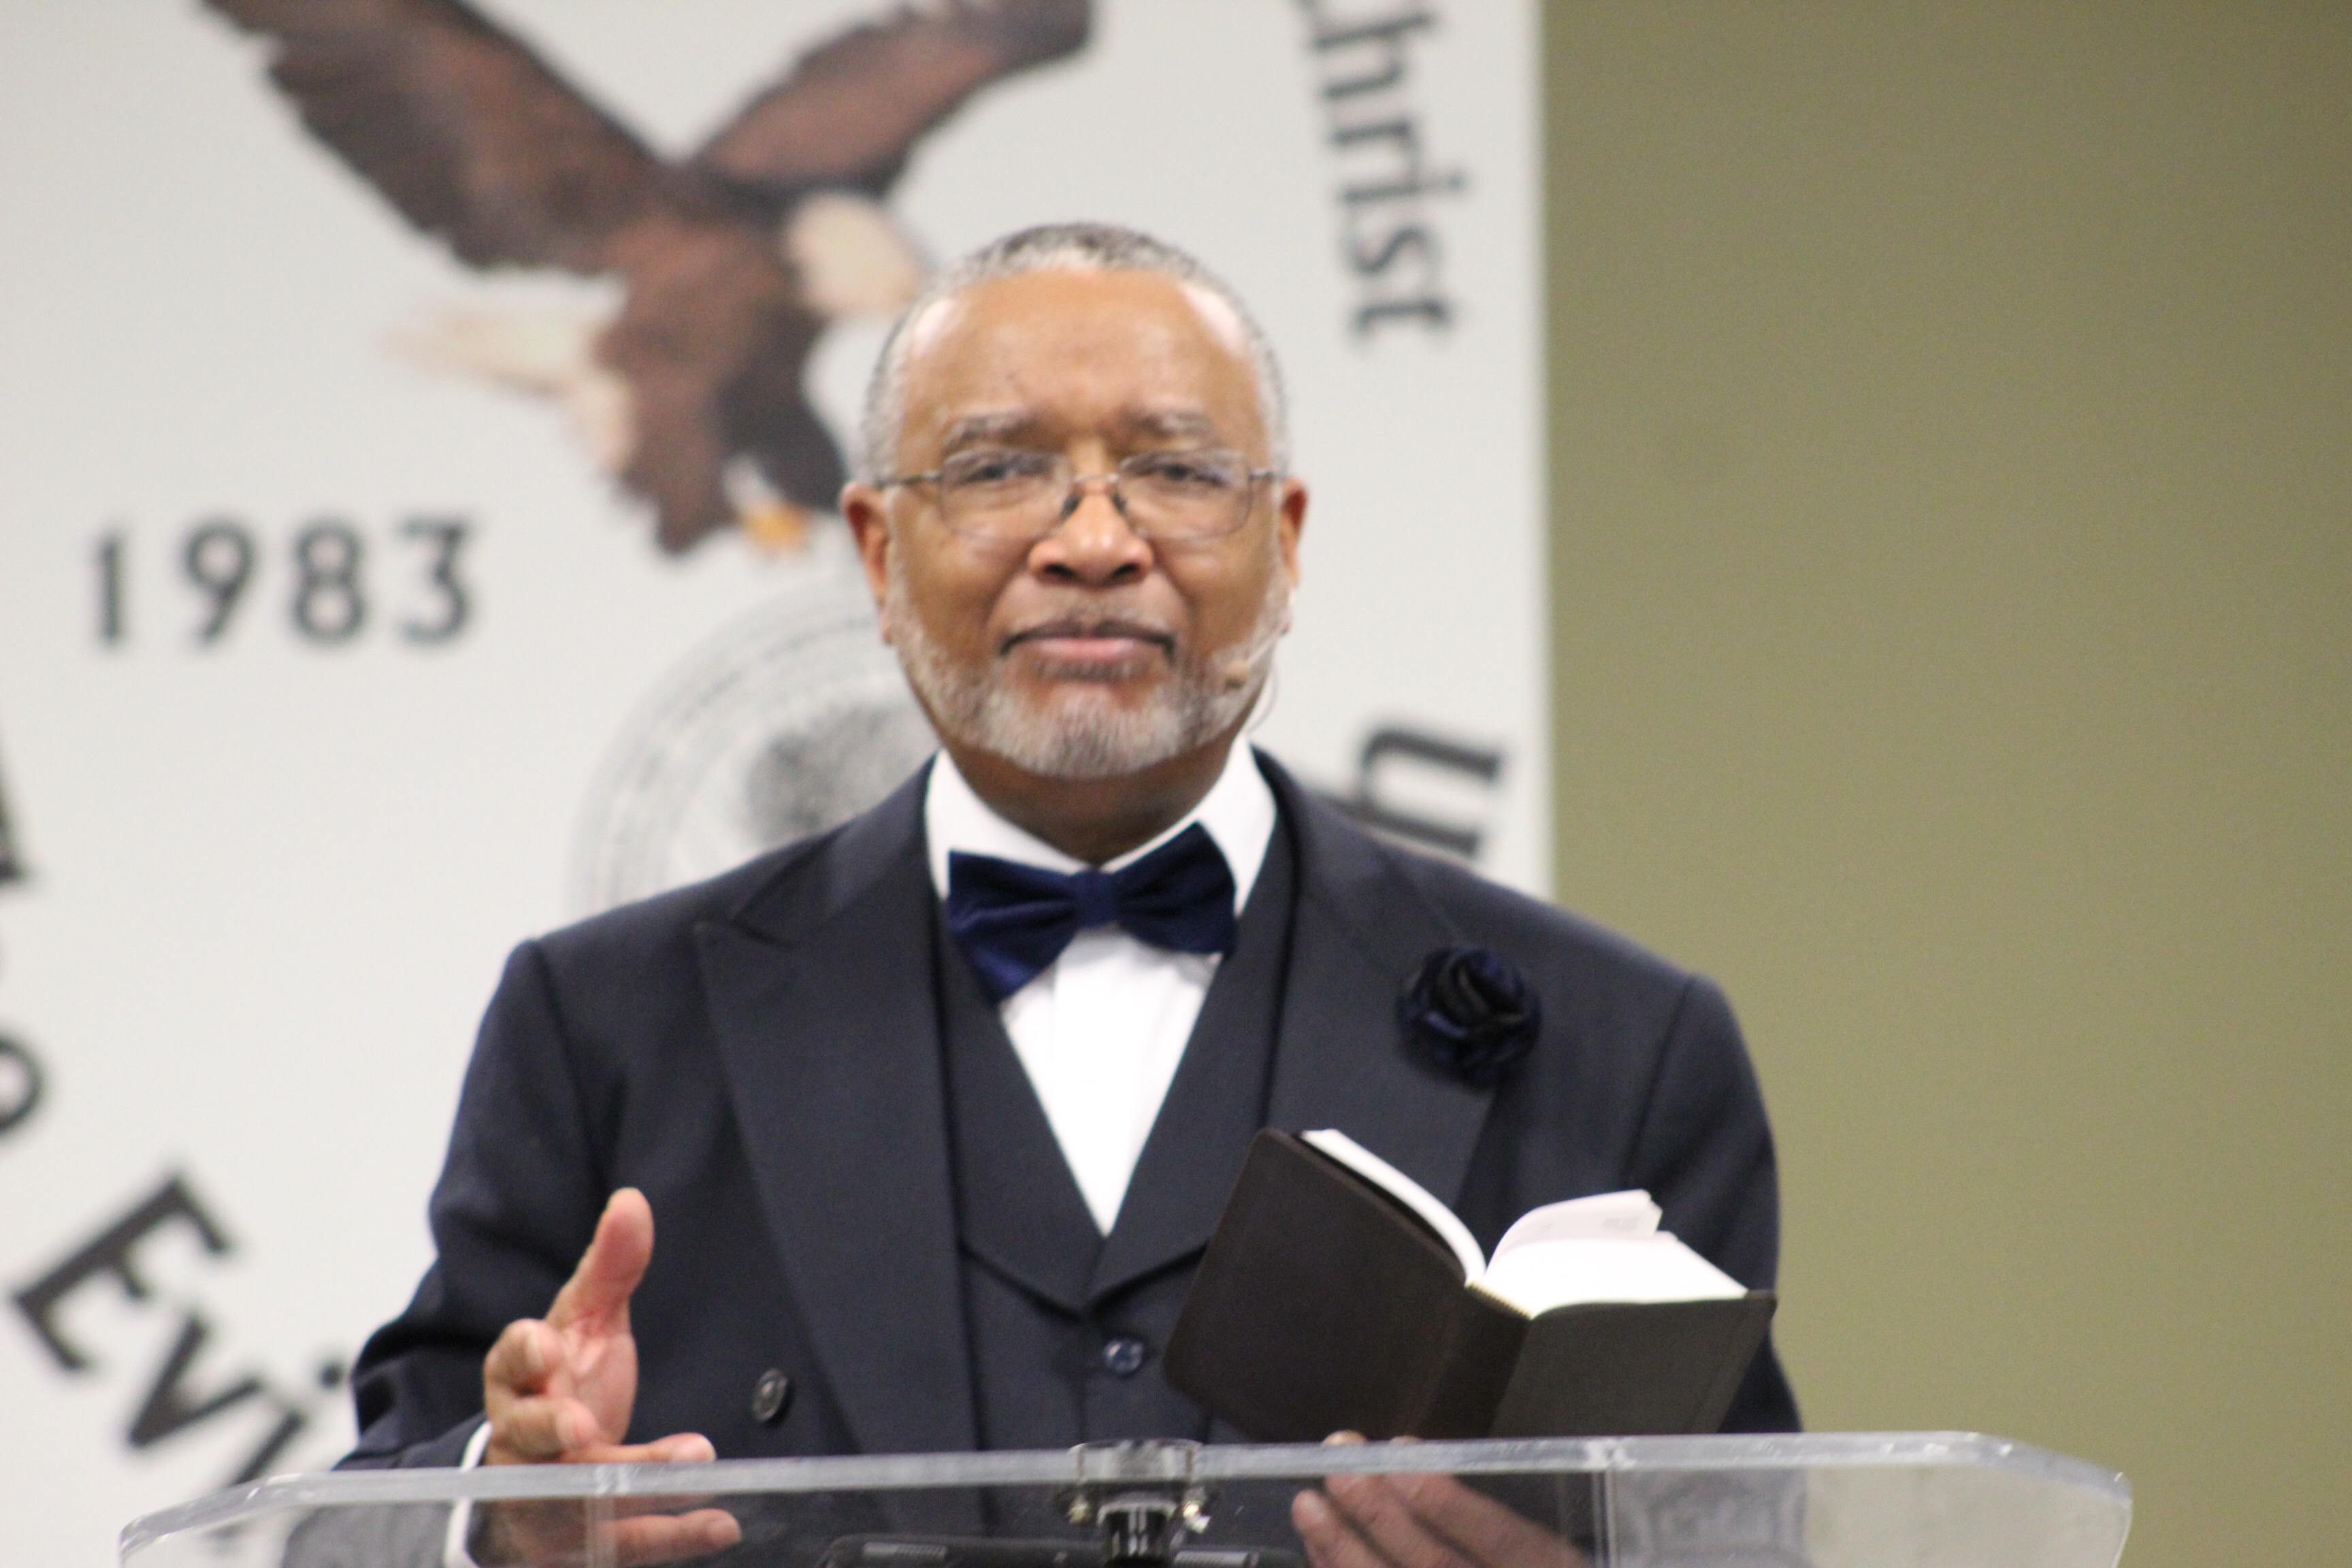 Dr. Gary L. Cordon, Sr. preaching holding Bible in left hand in front of logo in pulpit.